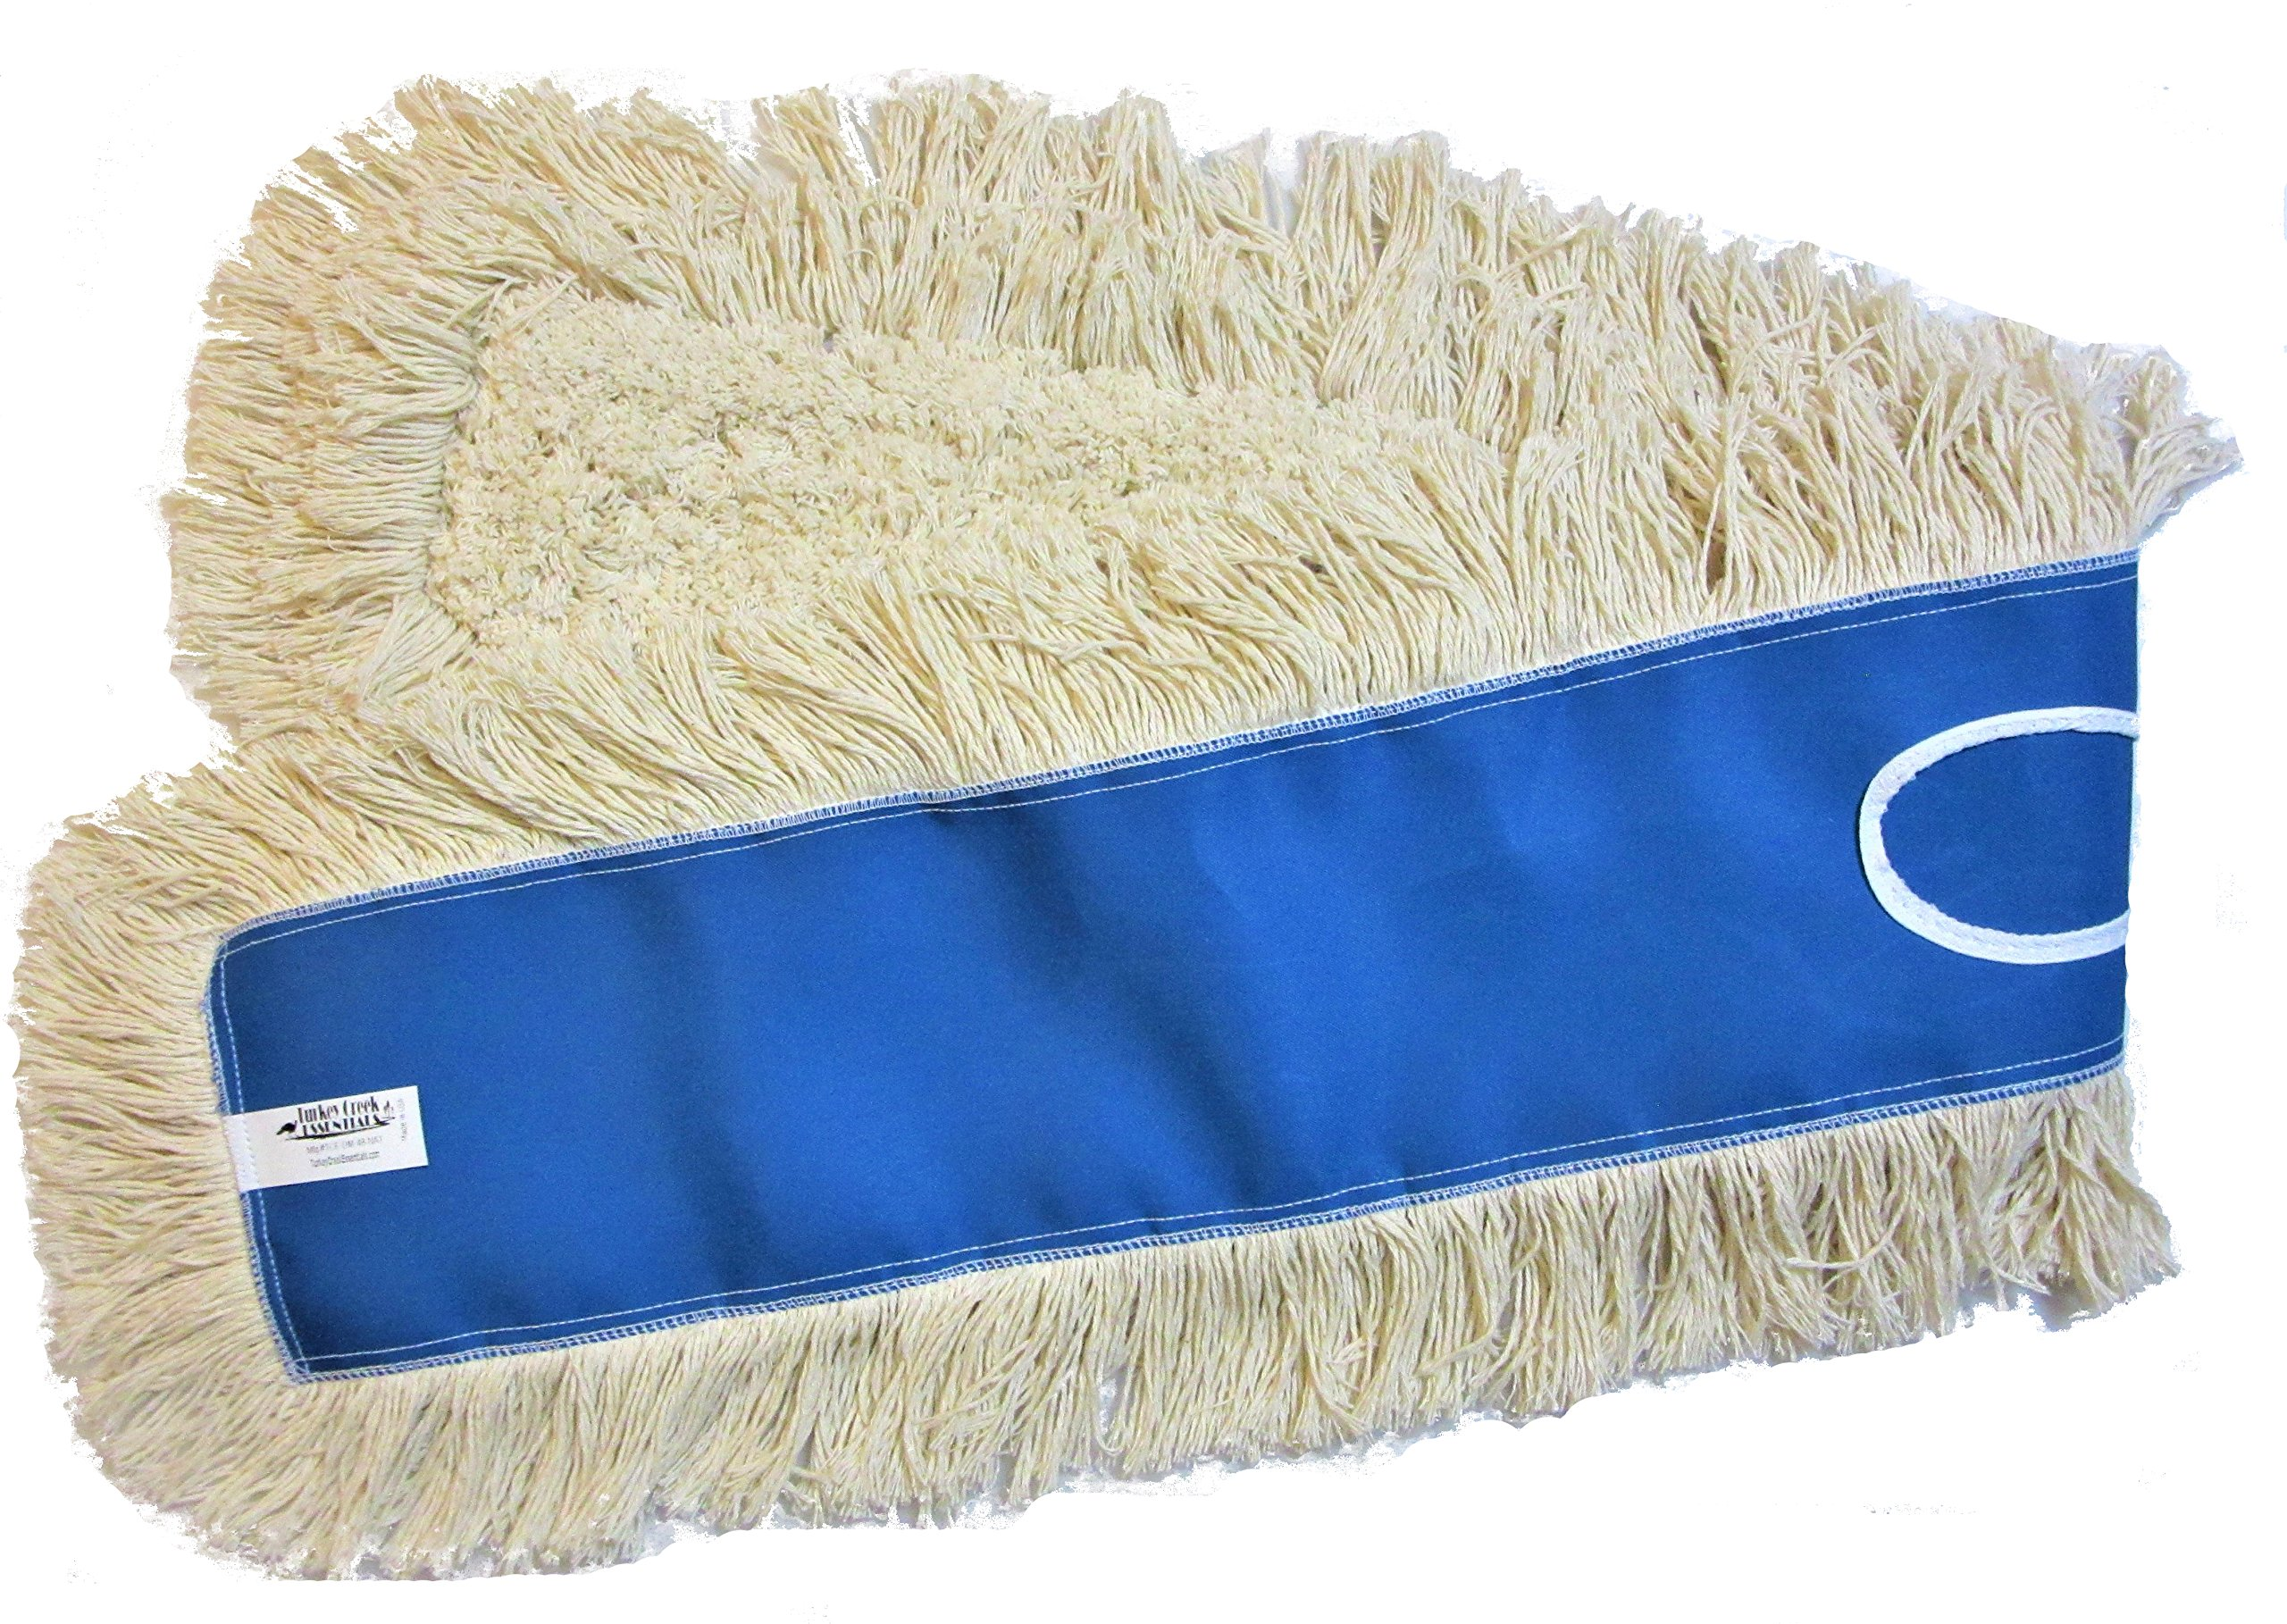 48'' Industrial Strength Washable Cotton Dust Mop Refill Thick Tufted Replacement Head for Home & Commercial Use for 48 Inch Frame Cleans Hardwood Laminate Concrete or Other Floor Systems by Turkey Creek Essentials